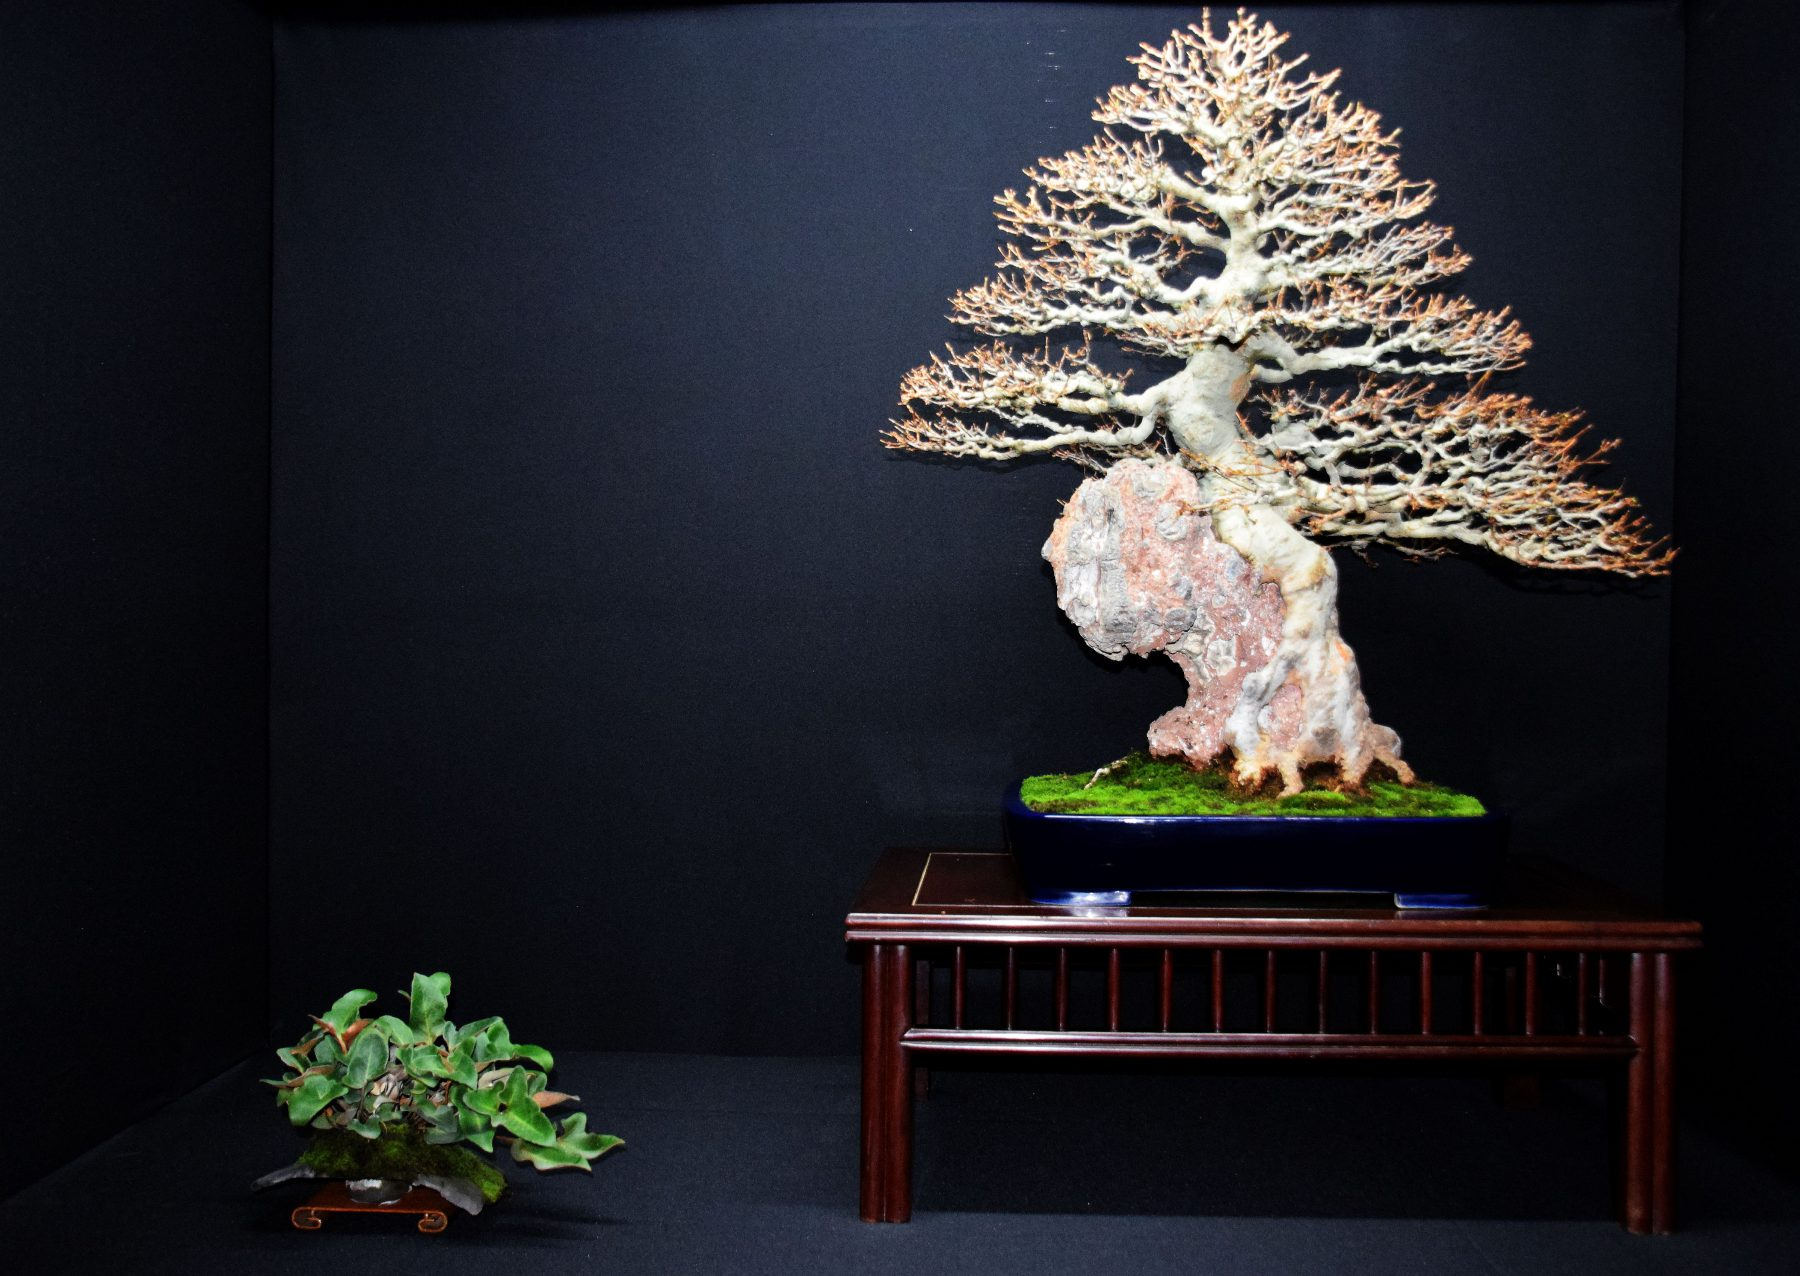 bonsai-museum-luis-vallejo-013